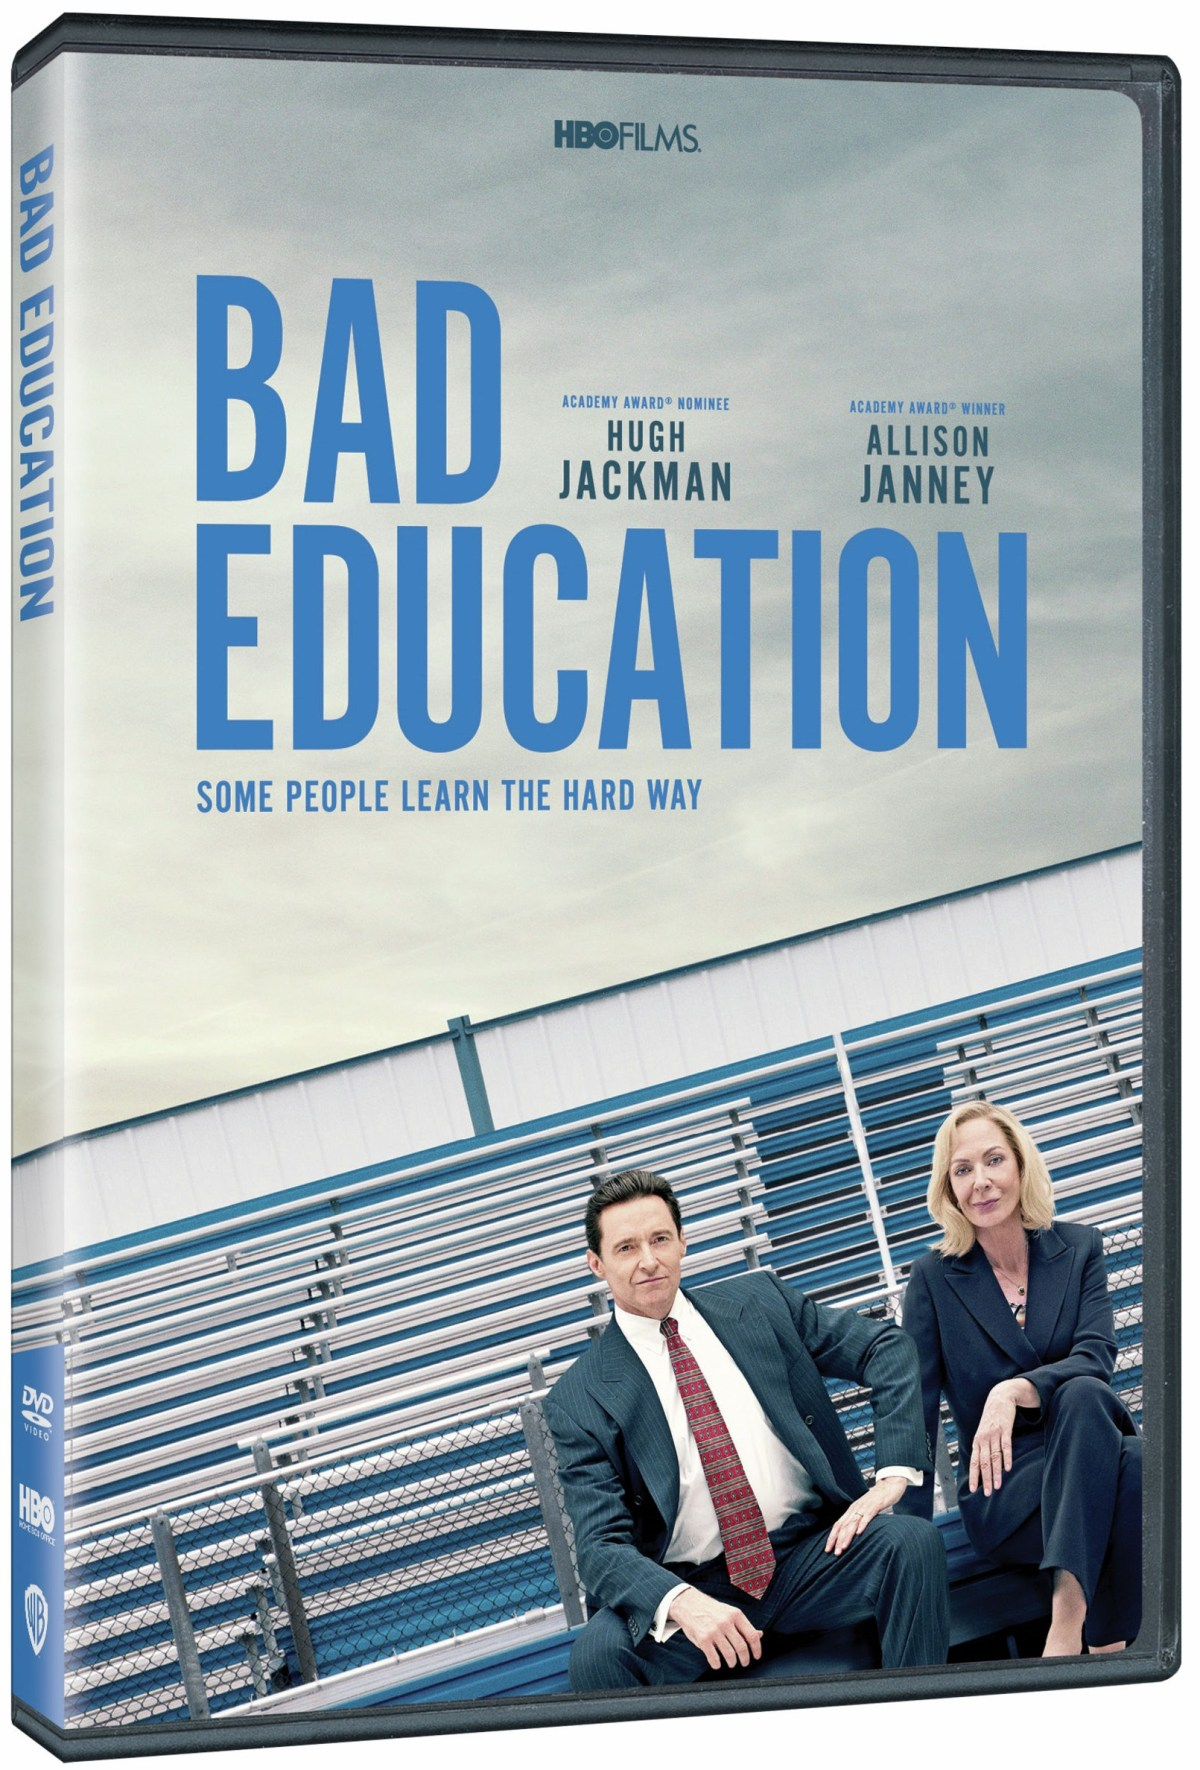 Bad Education Blu ray, DVD Release Date, Details and Artwork, HBO image